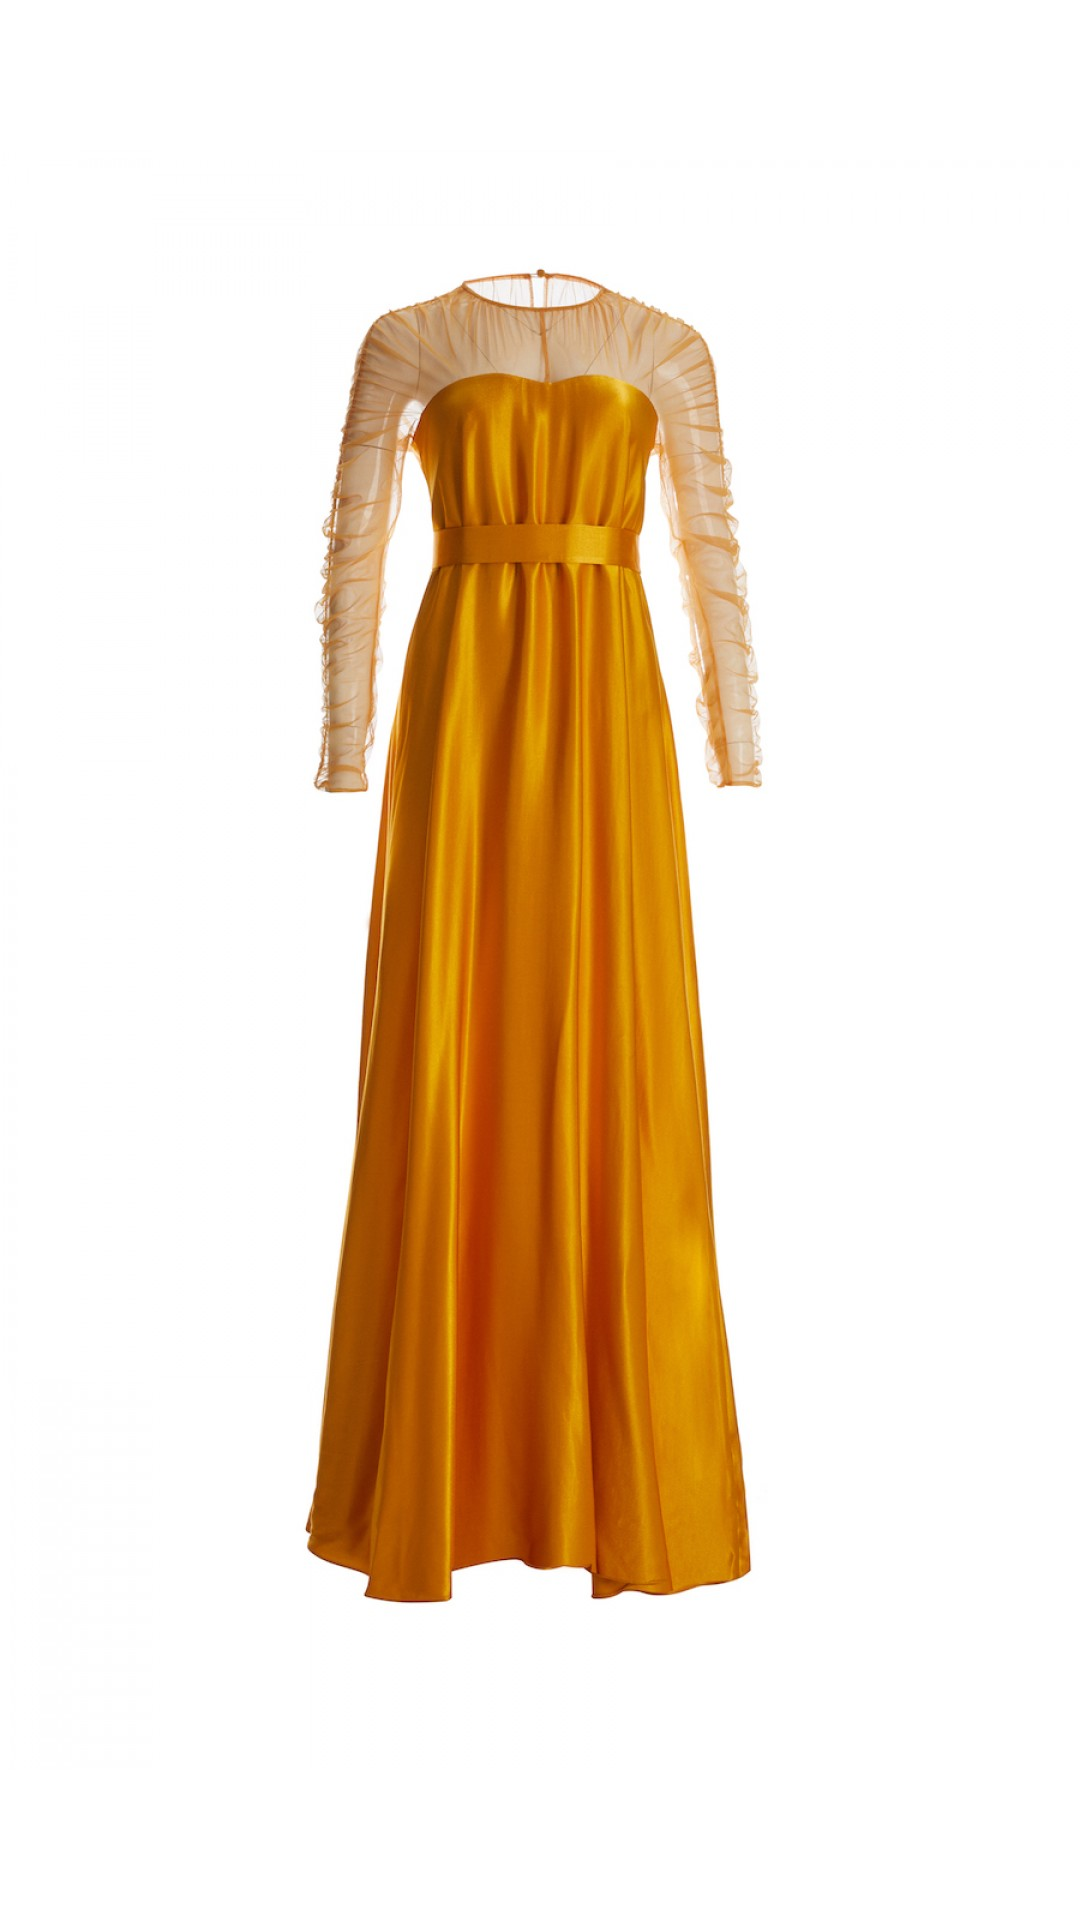 BELT DETAILED YELLOW DRESS